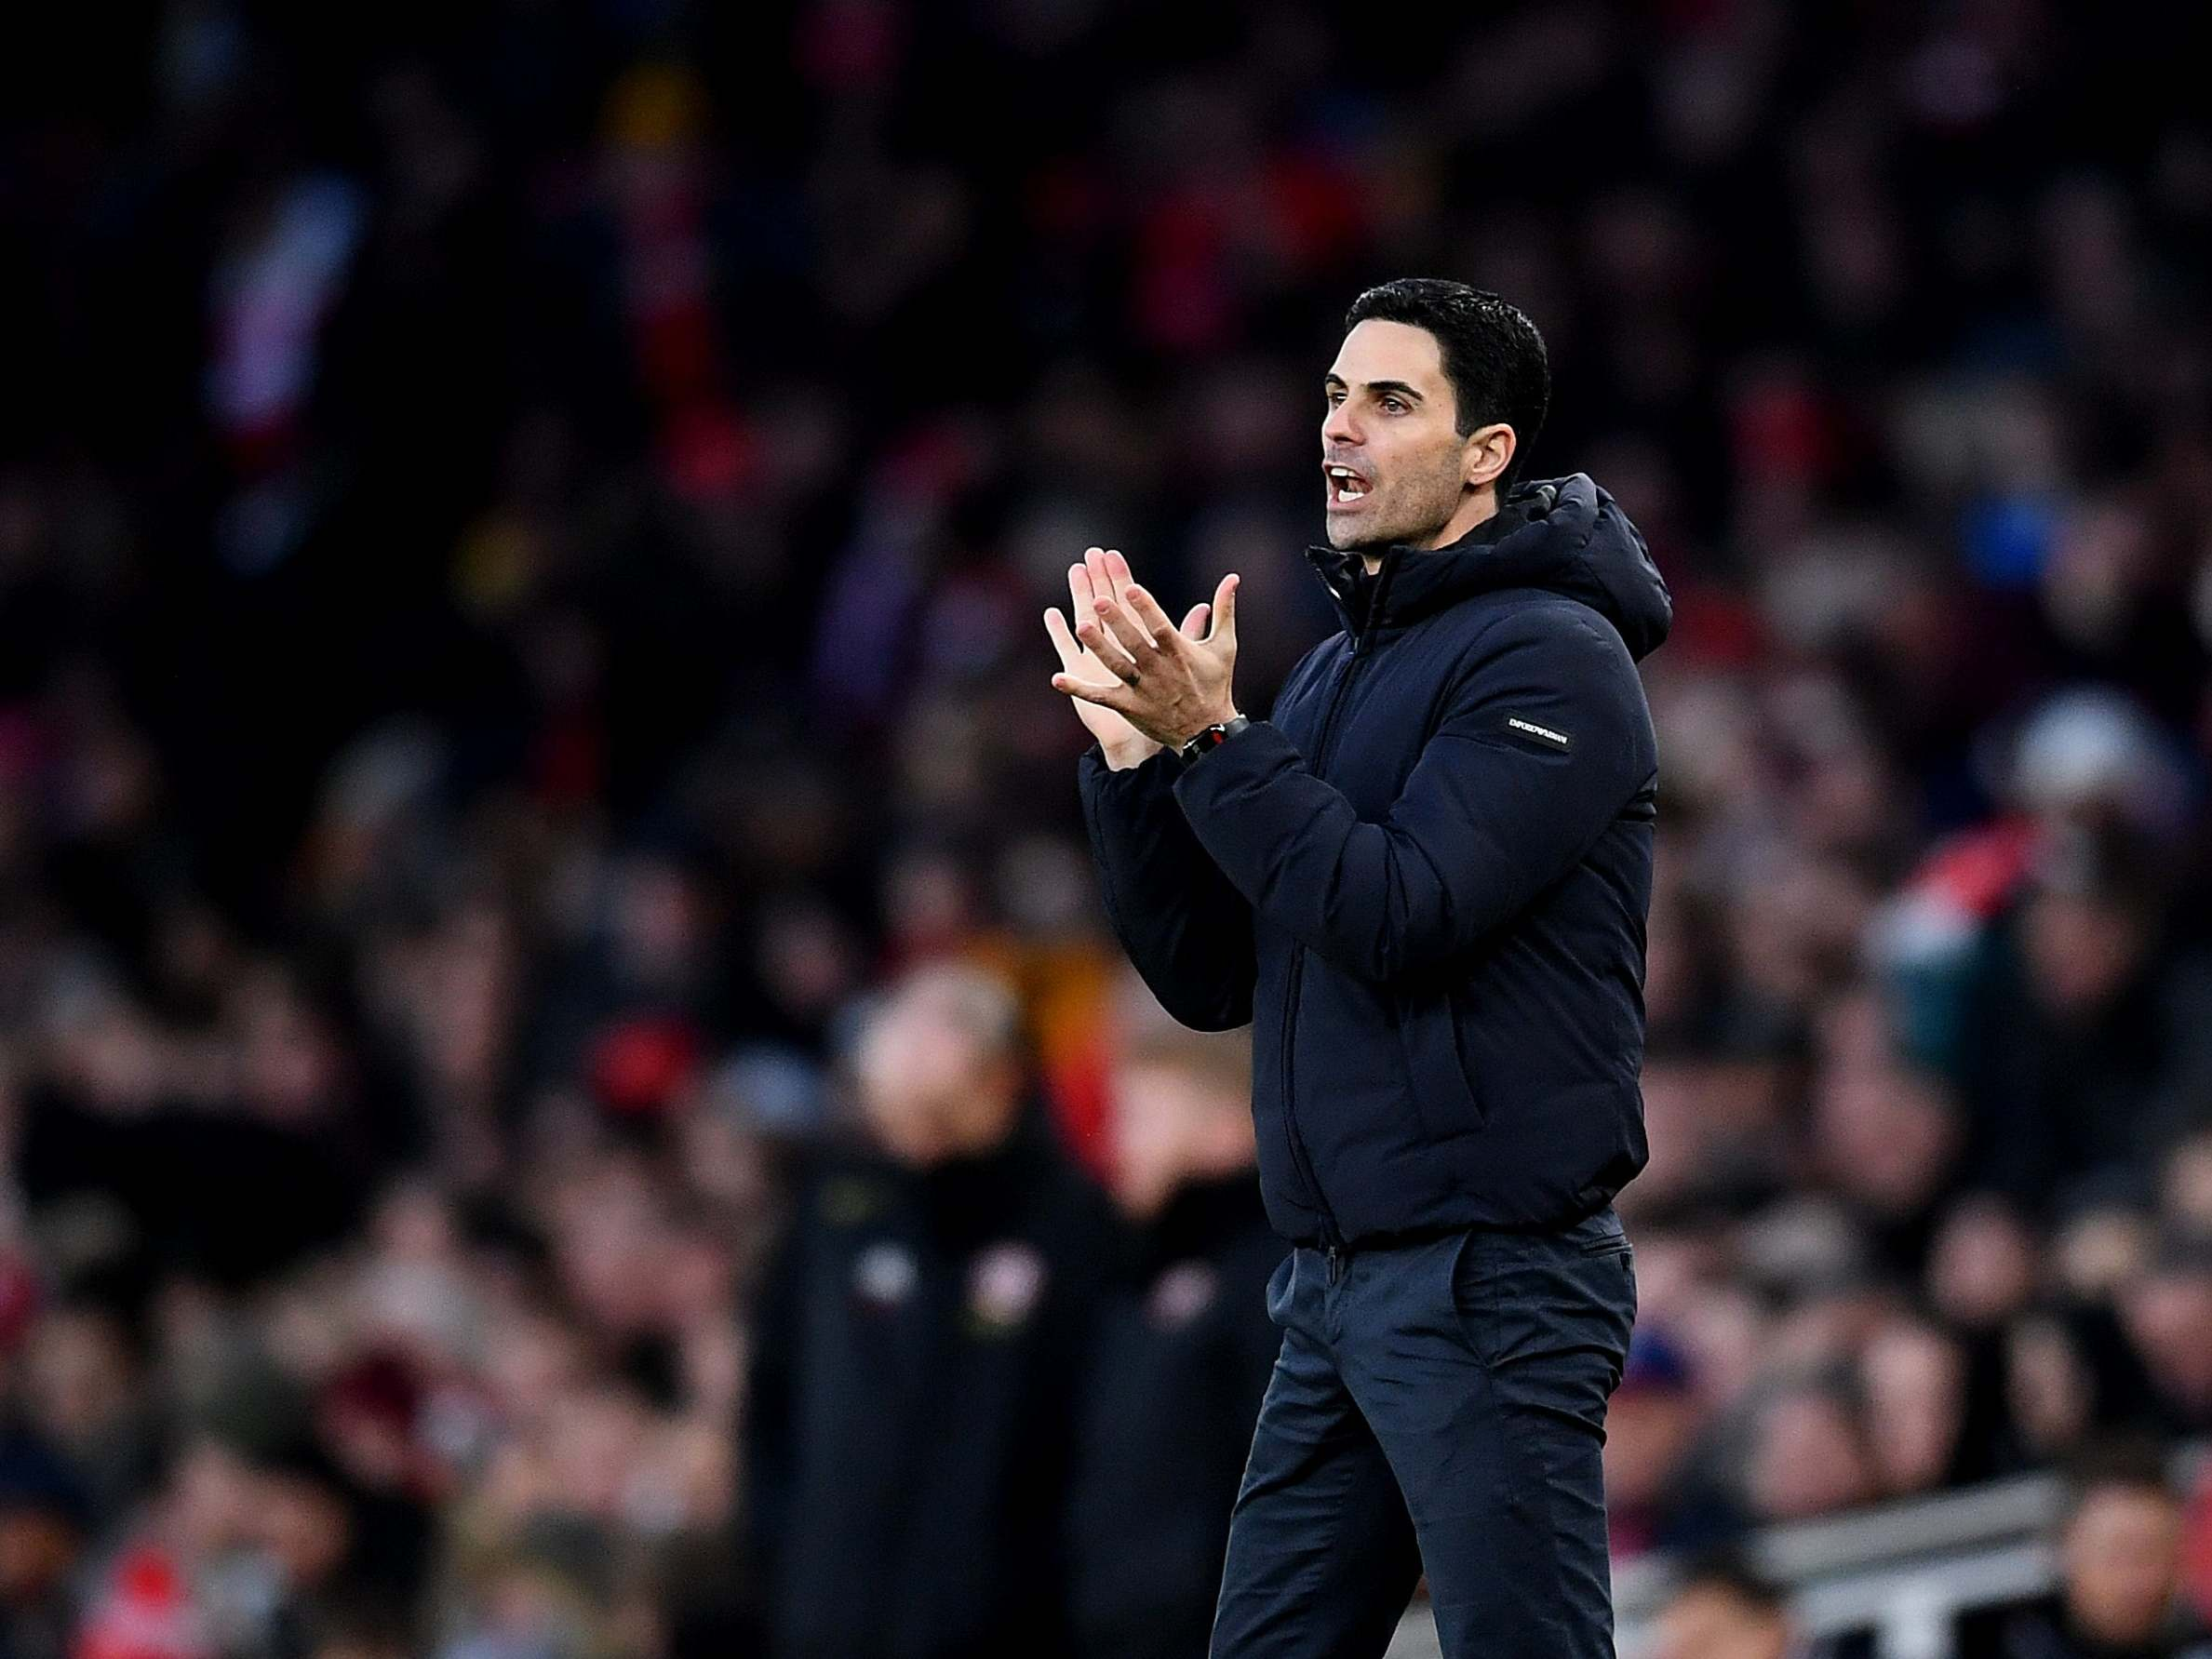 Mikel Arteta: Rift between Arsenal players and supporters is starting to heal